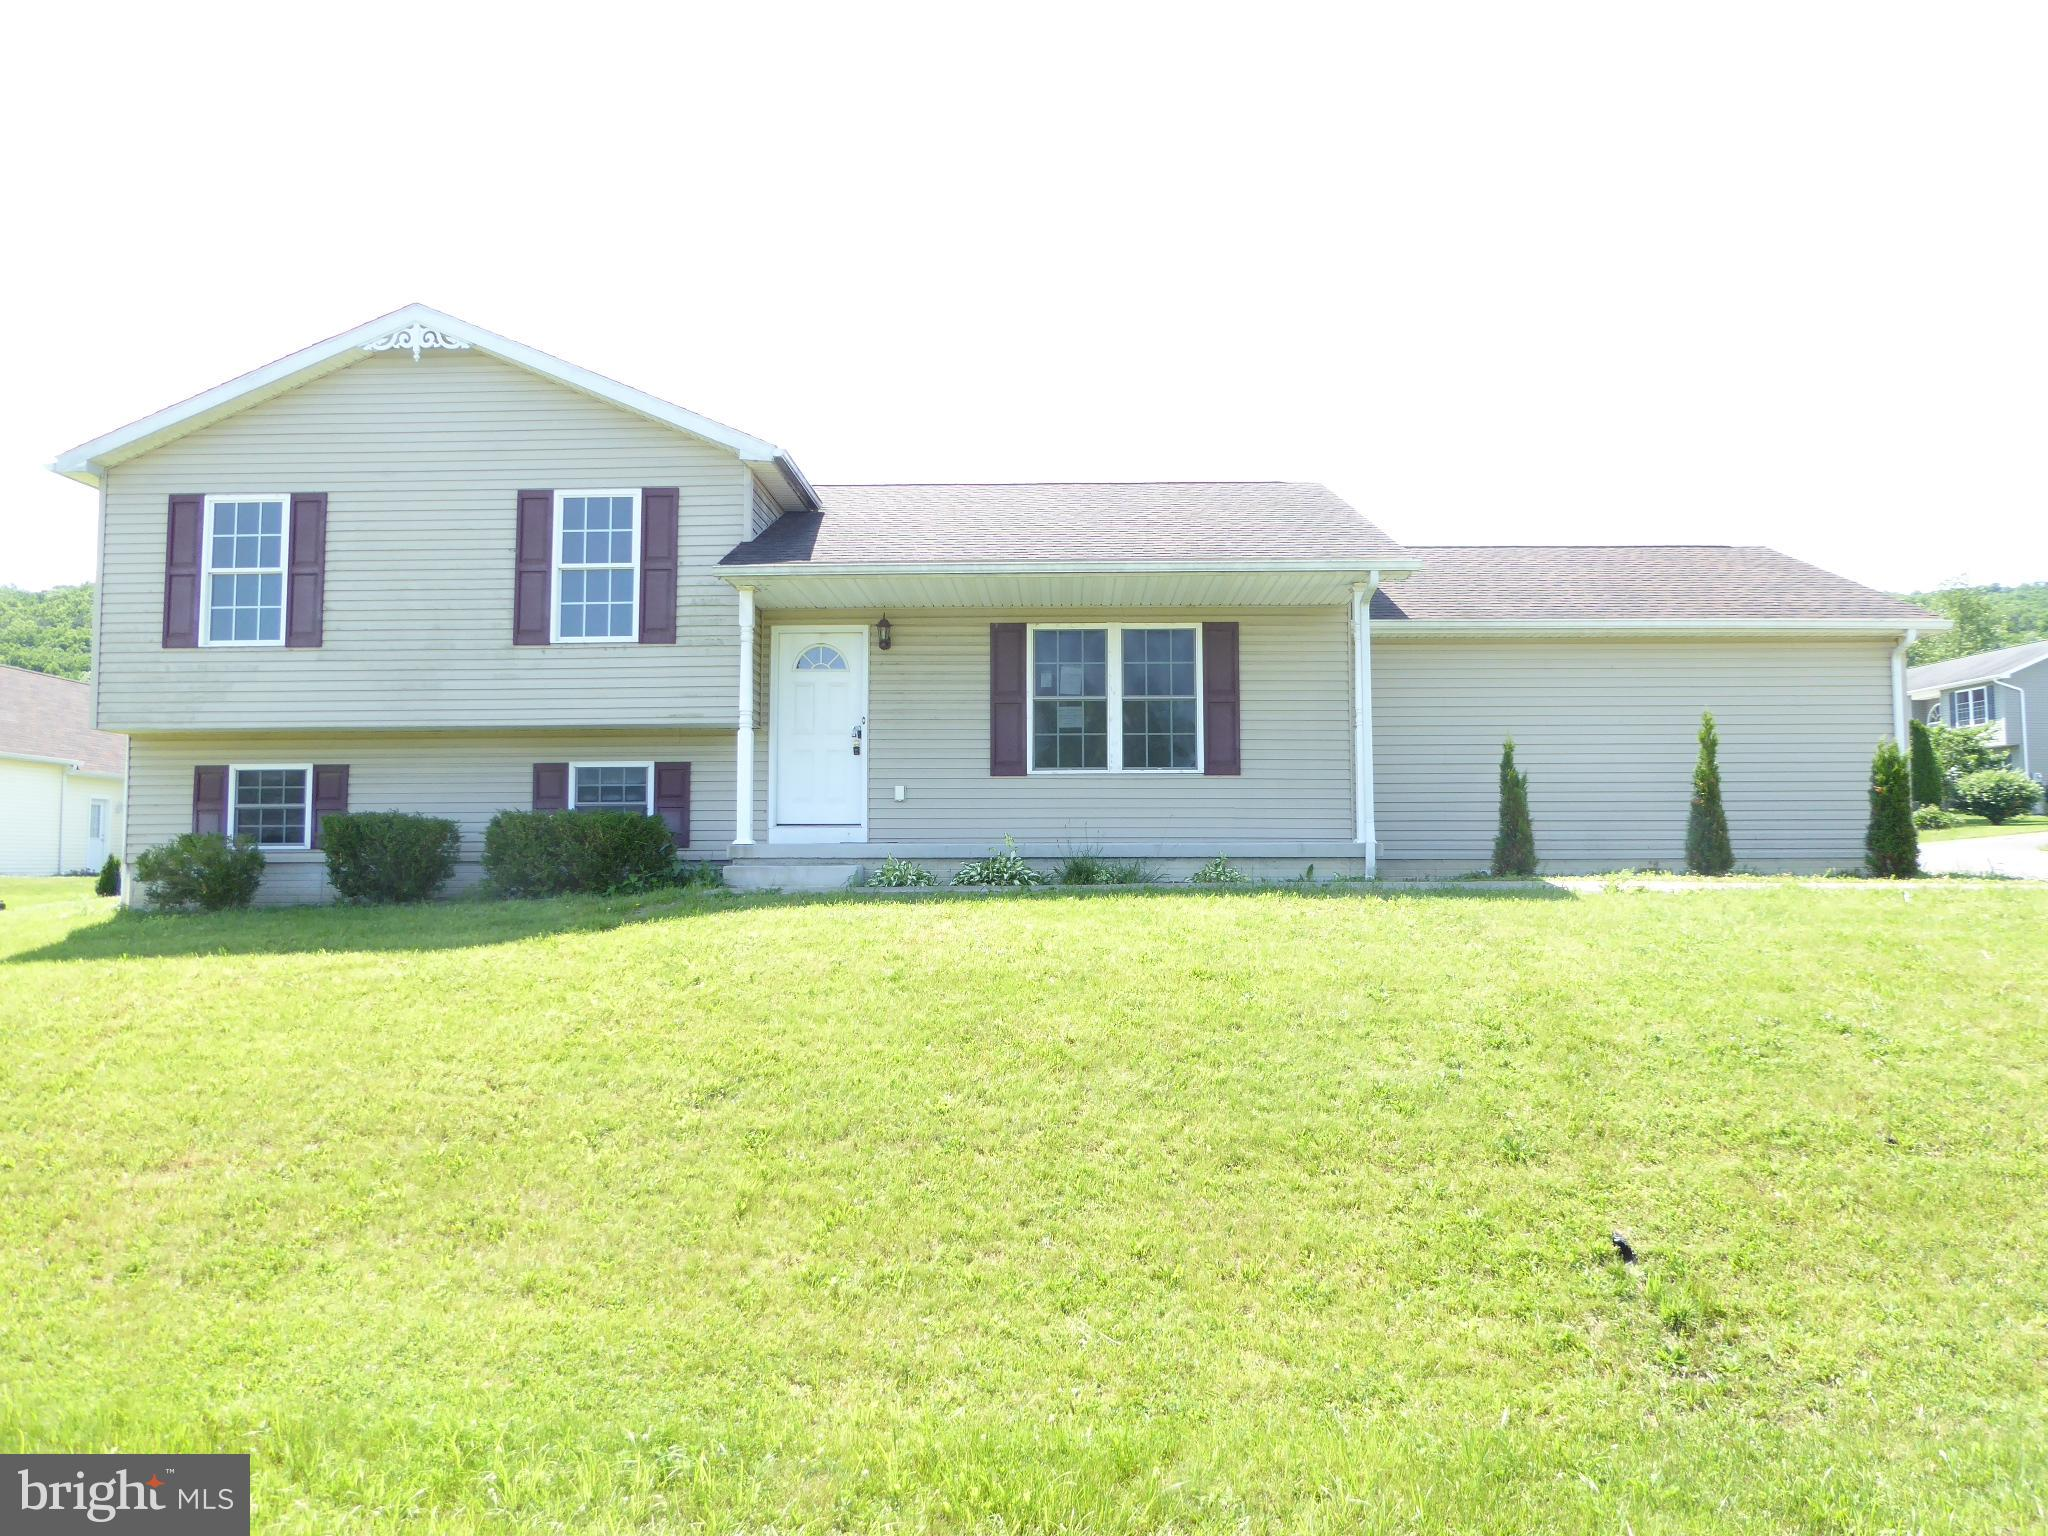 104 MULBERRY LANE, WARDENSVILLE, WV 26851